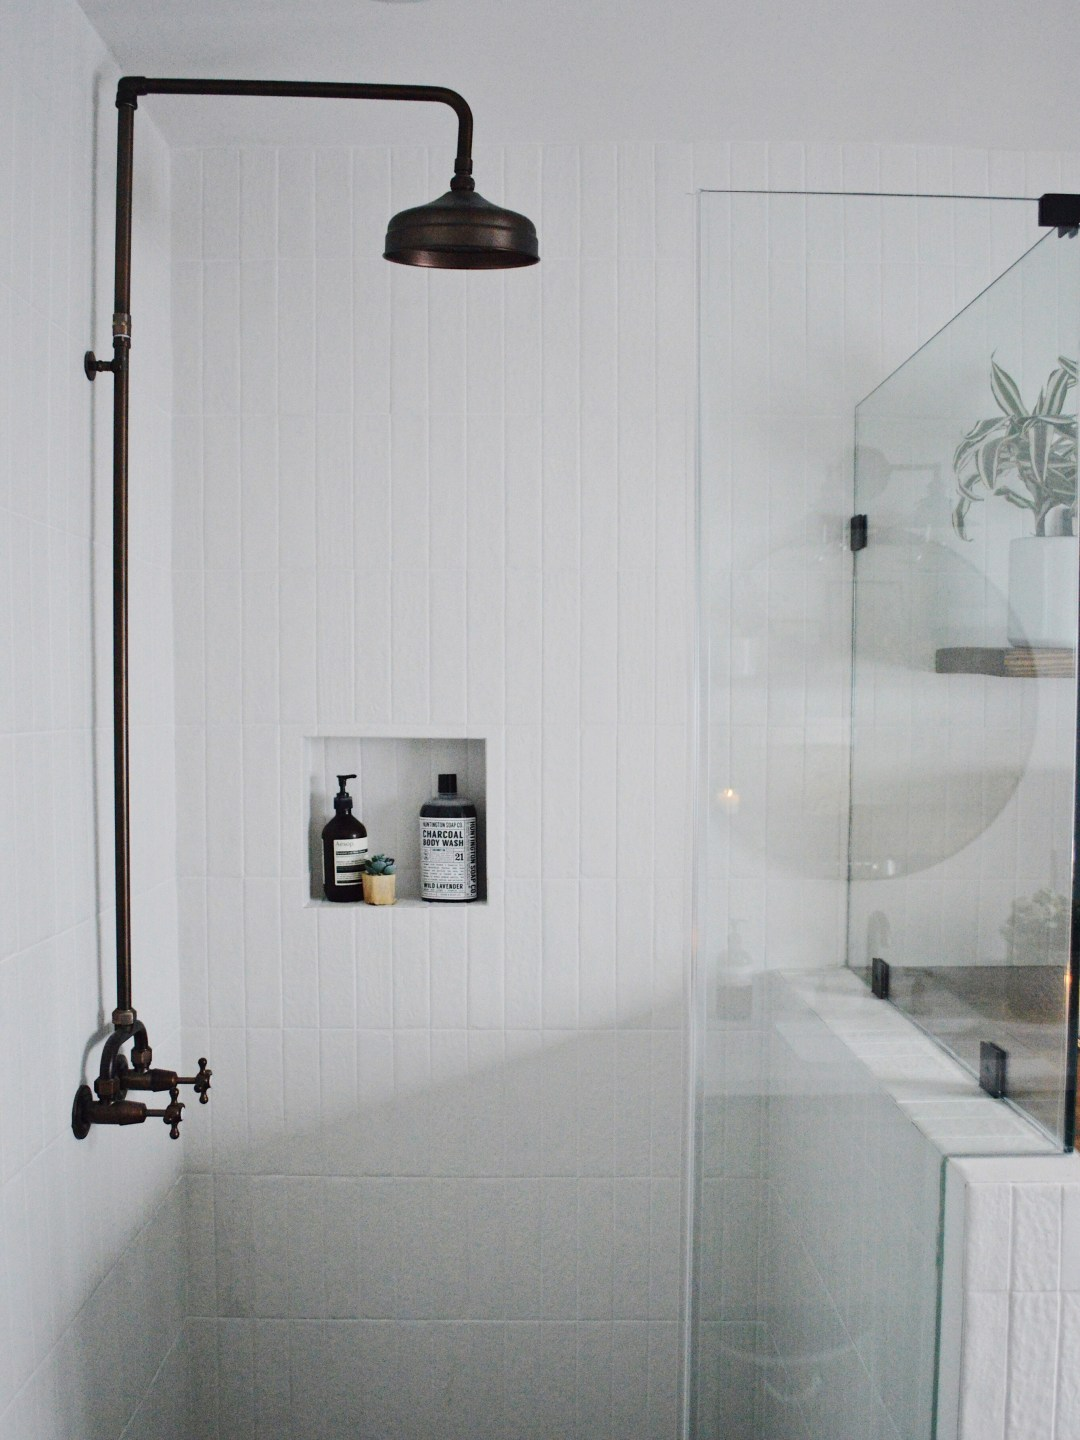 shower: Bedrosians tile and Signature Hardware faucet